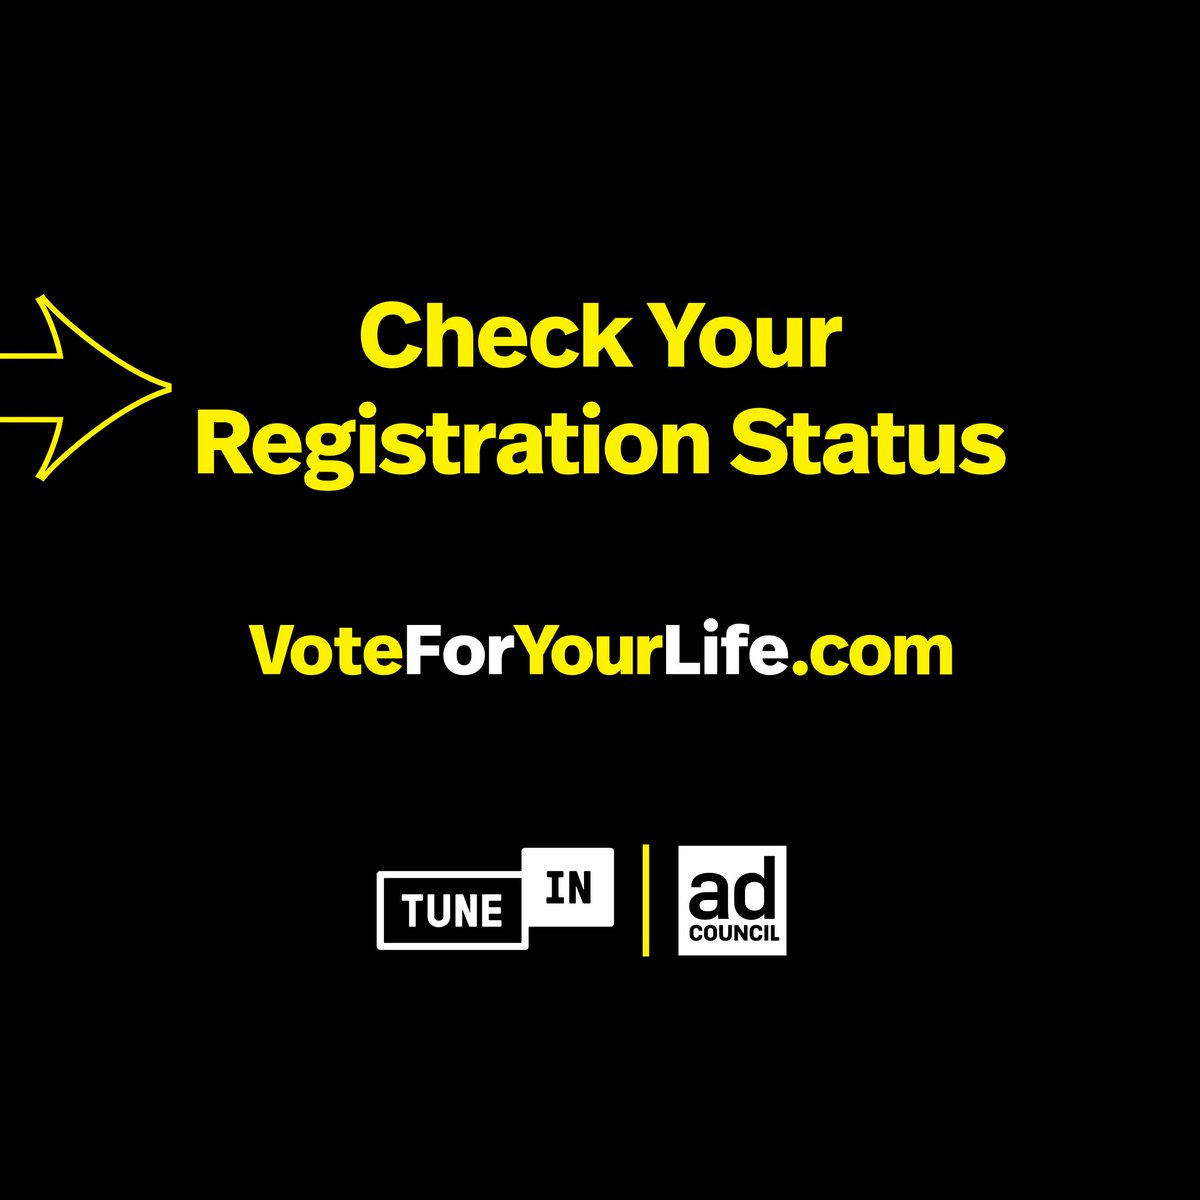 On this #NationalVoterRegistrationDay in the U.S., we are pleased to partner with the @AdCouncil to support, Vote For Your Life. Please visit https://t.co/wy06igOd4V to check your registration status, register to vote, and learn about your voting options. #VoteForYourLife https://t.co/nFhQfr7ILW